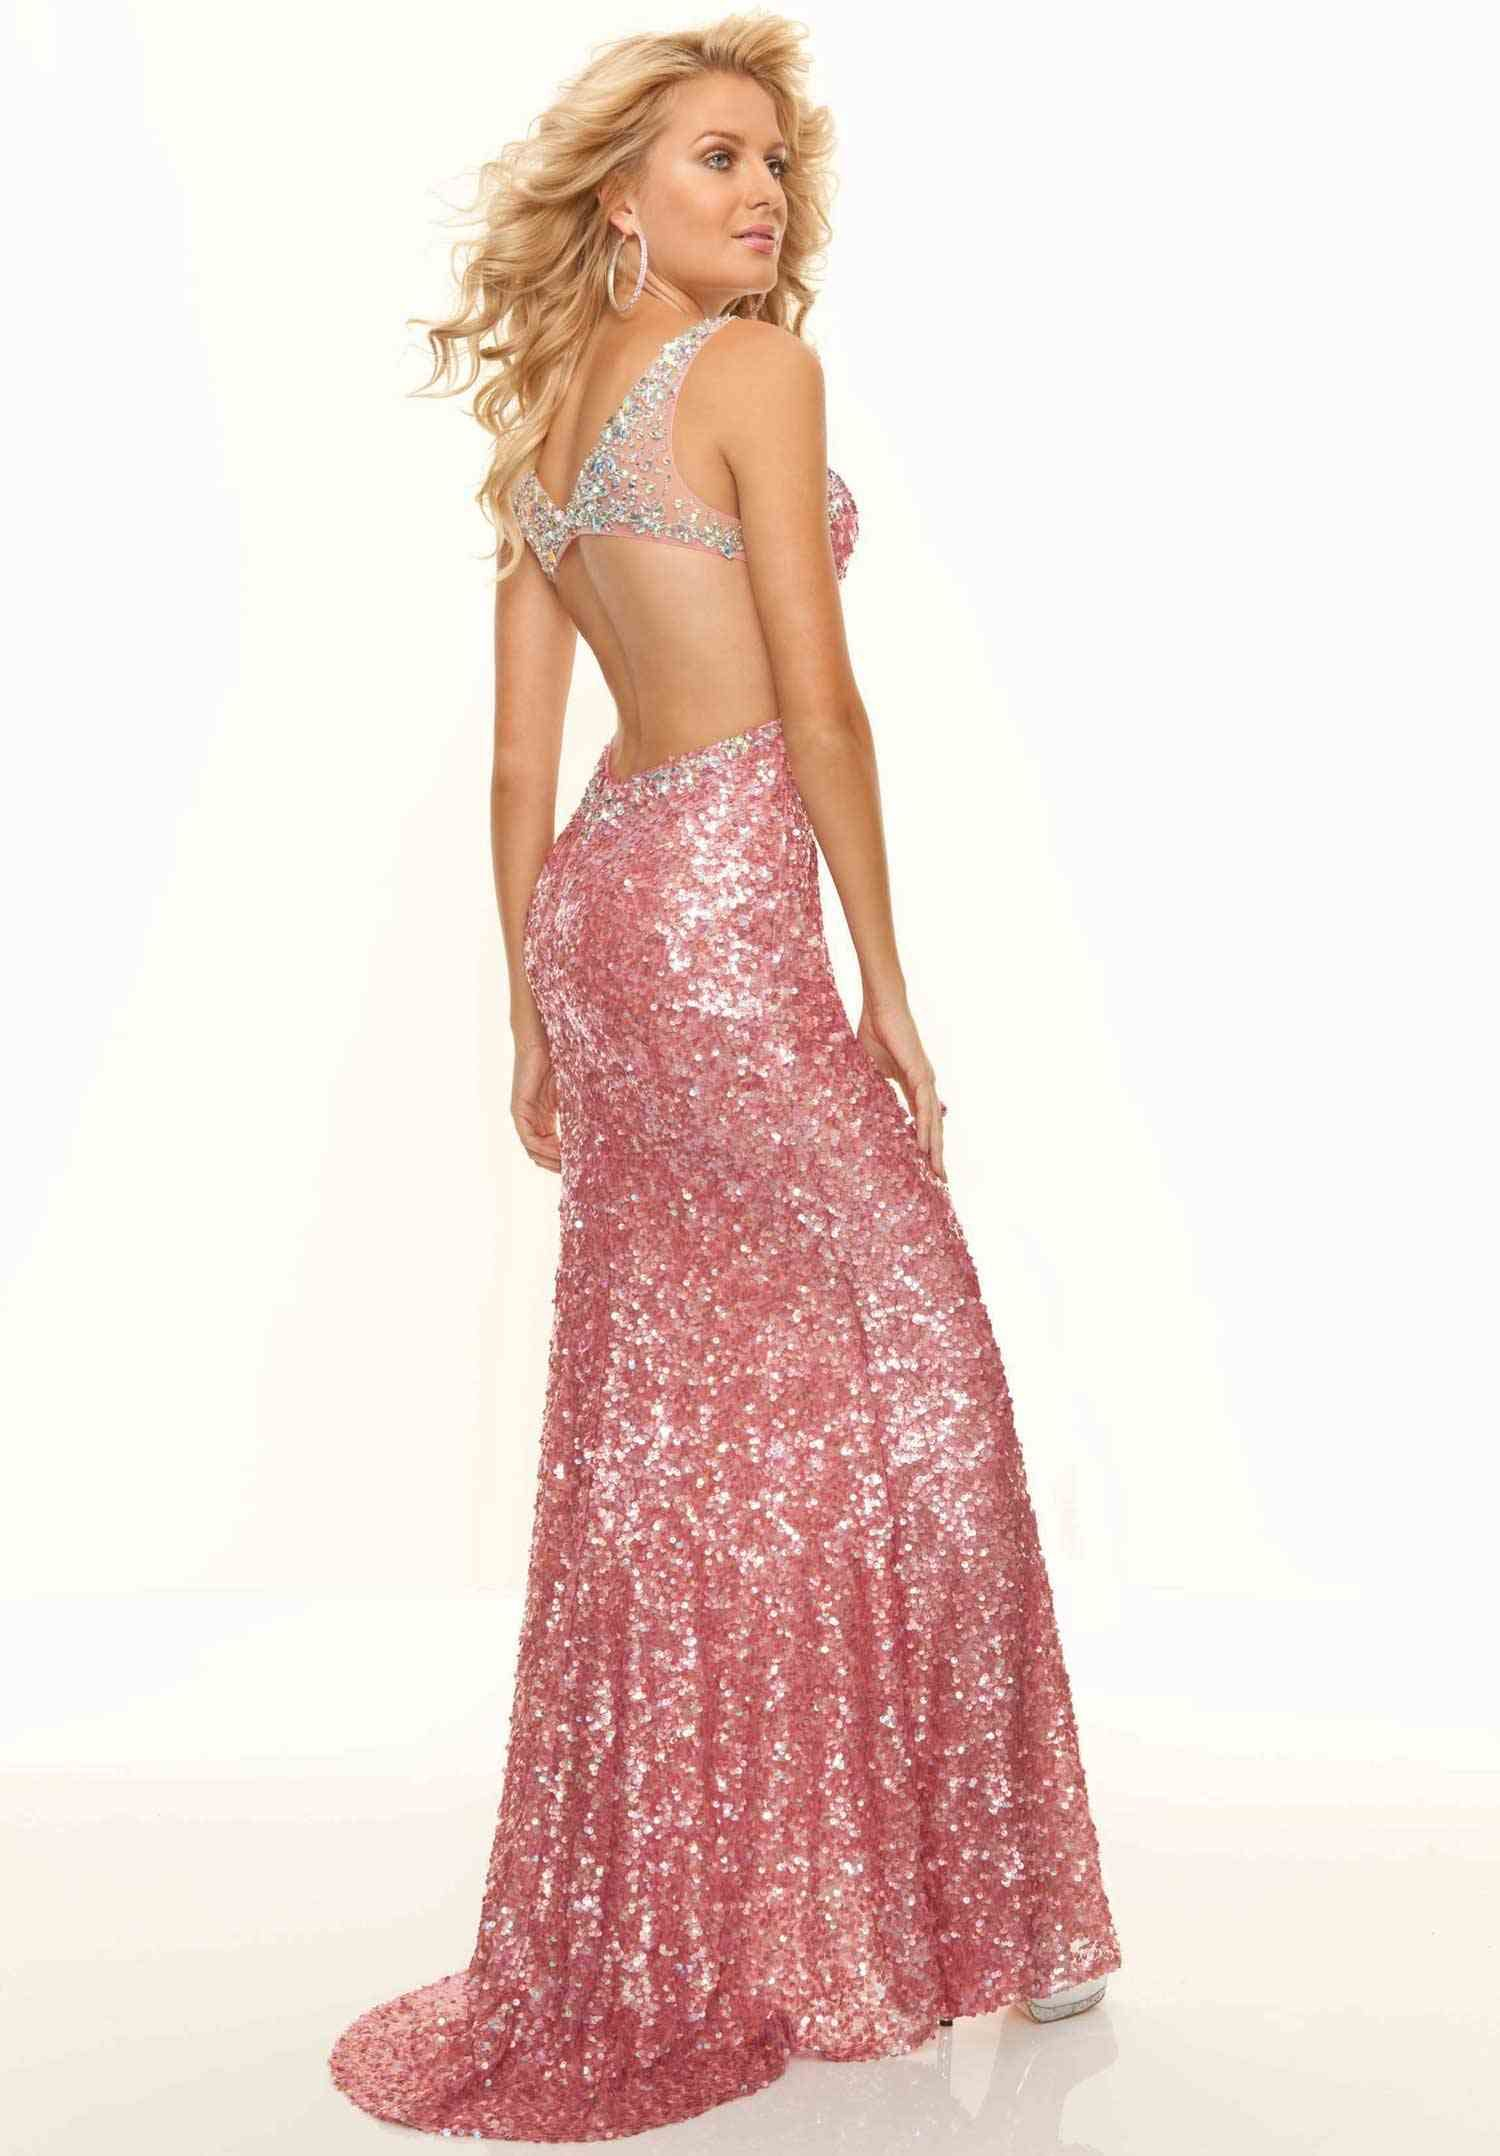 Pink Sparkly Prom Dress  Great Ideas For Fashion Dresses 2017